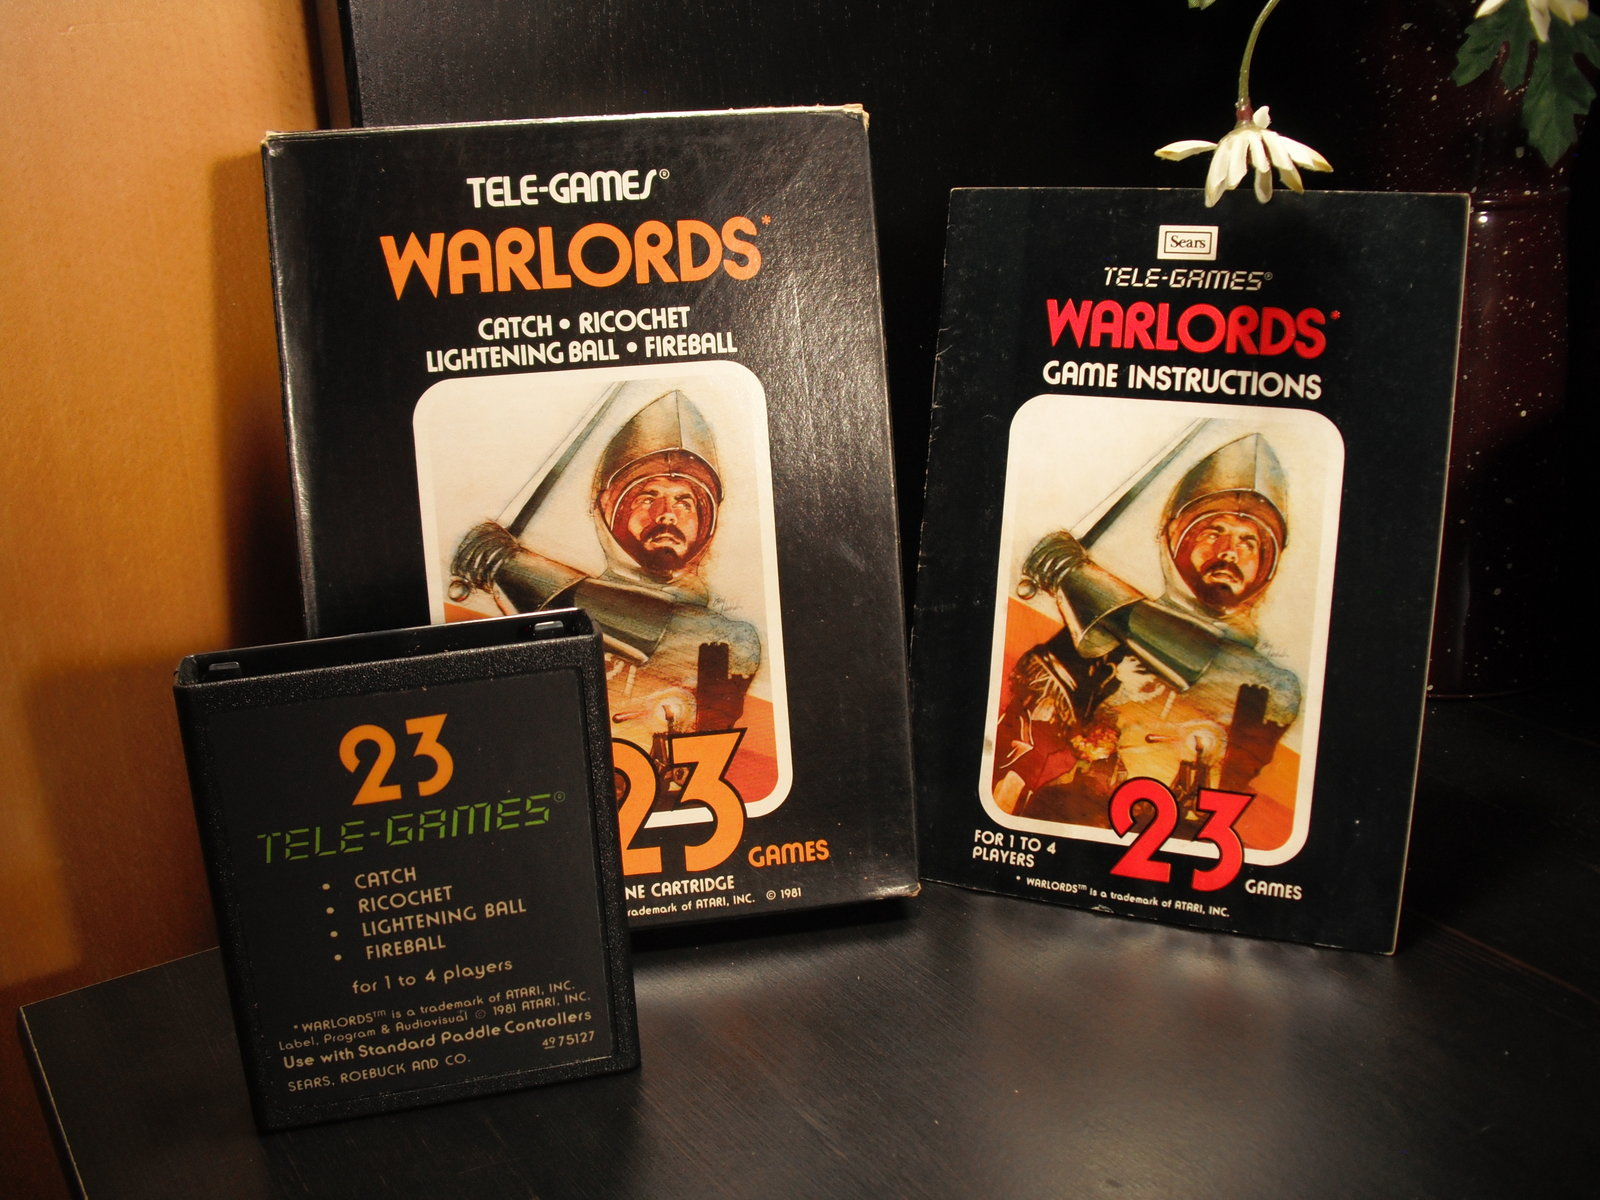 Warlords (Tele-Games)